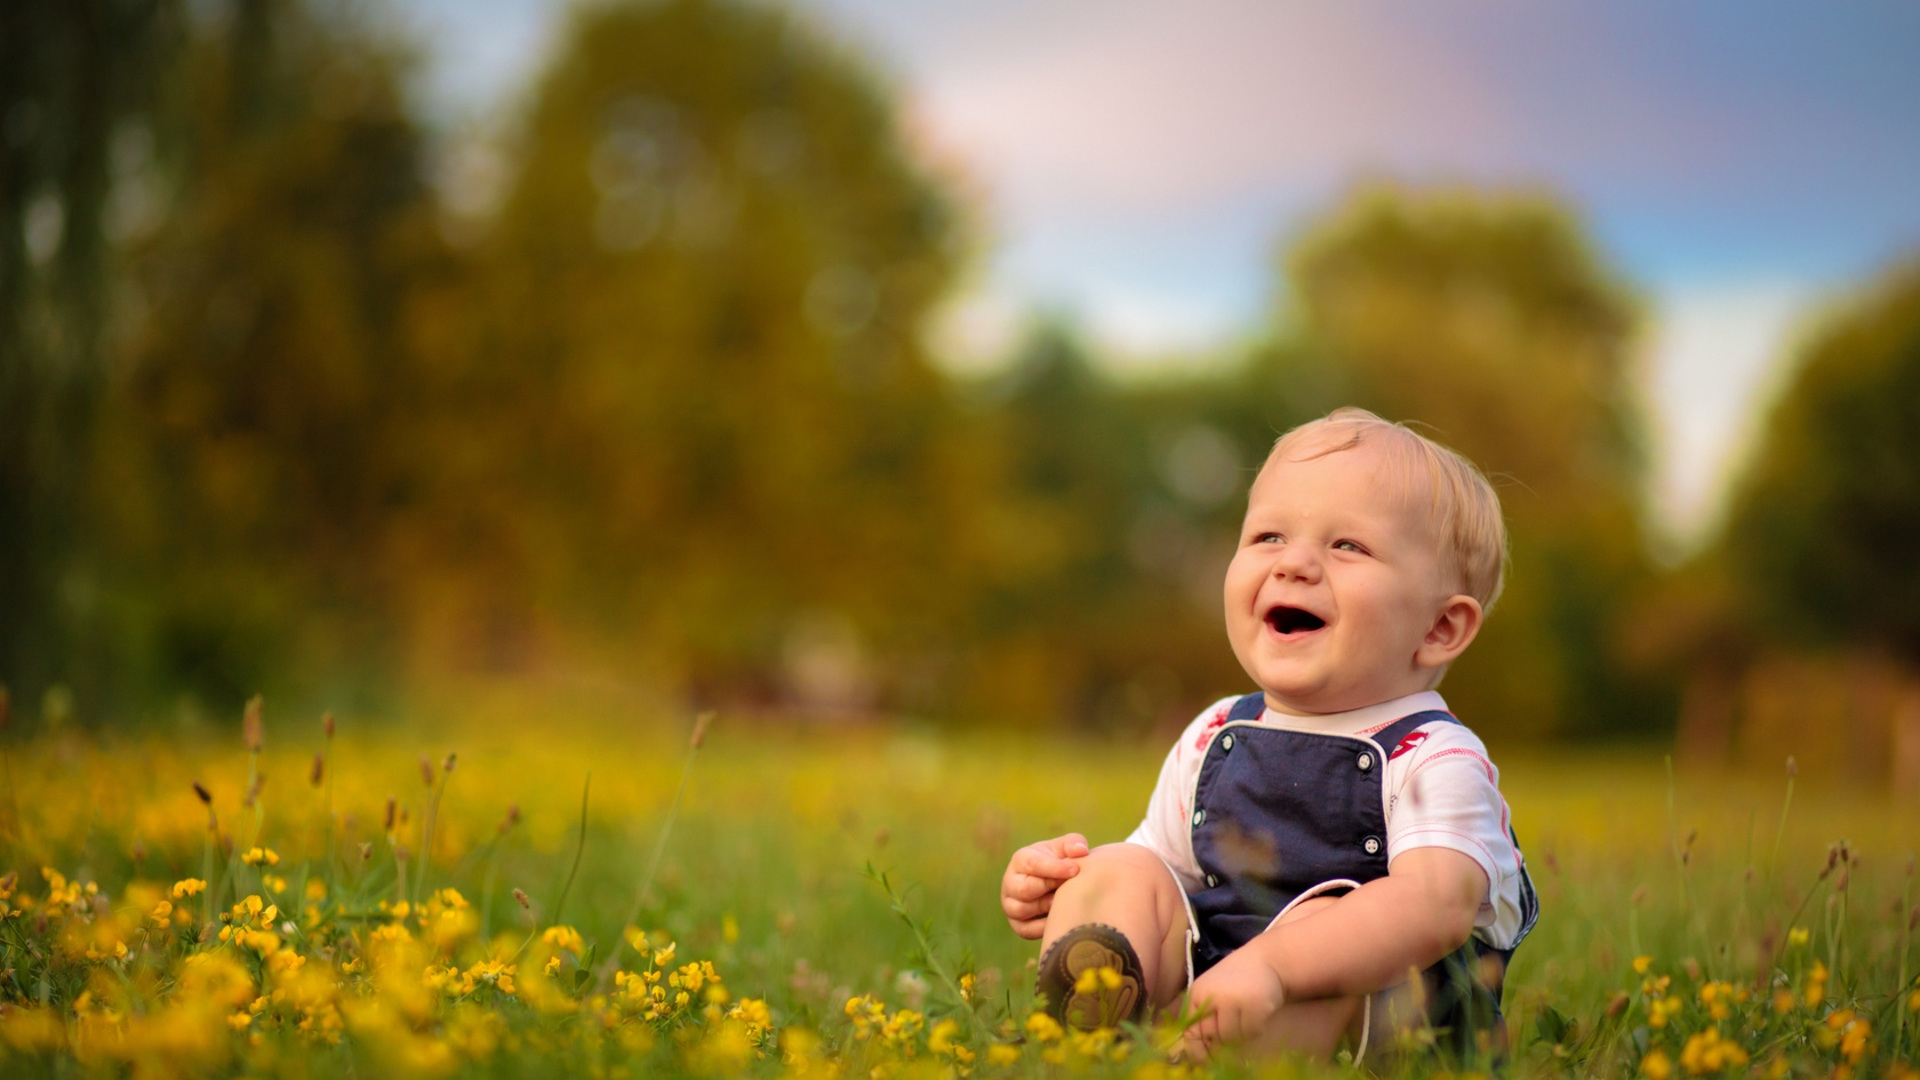 Laughing baby wallpapers SF